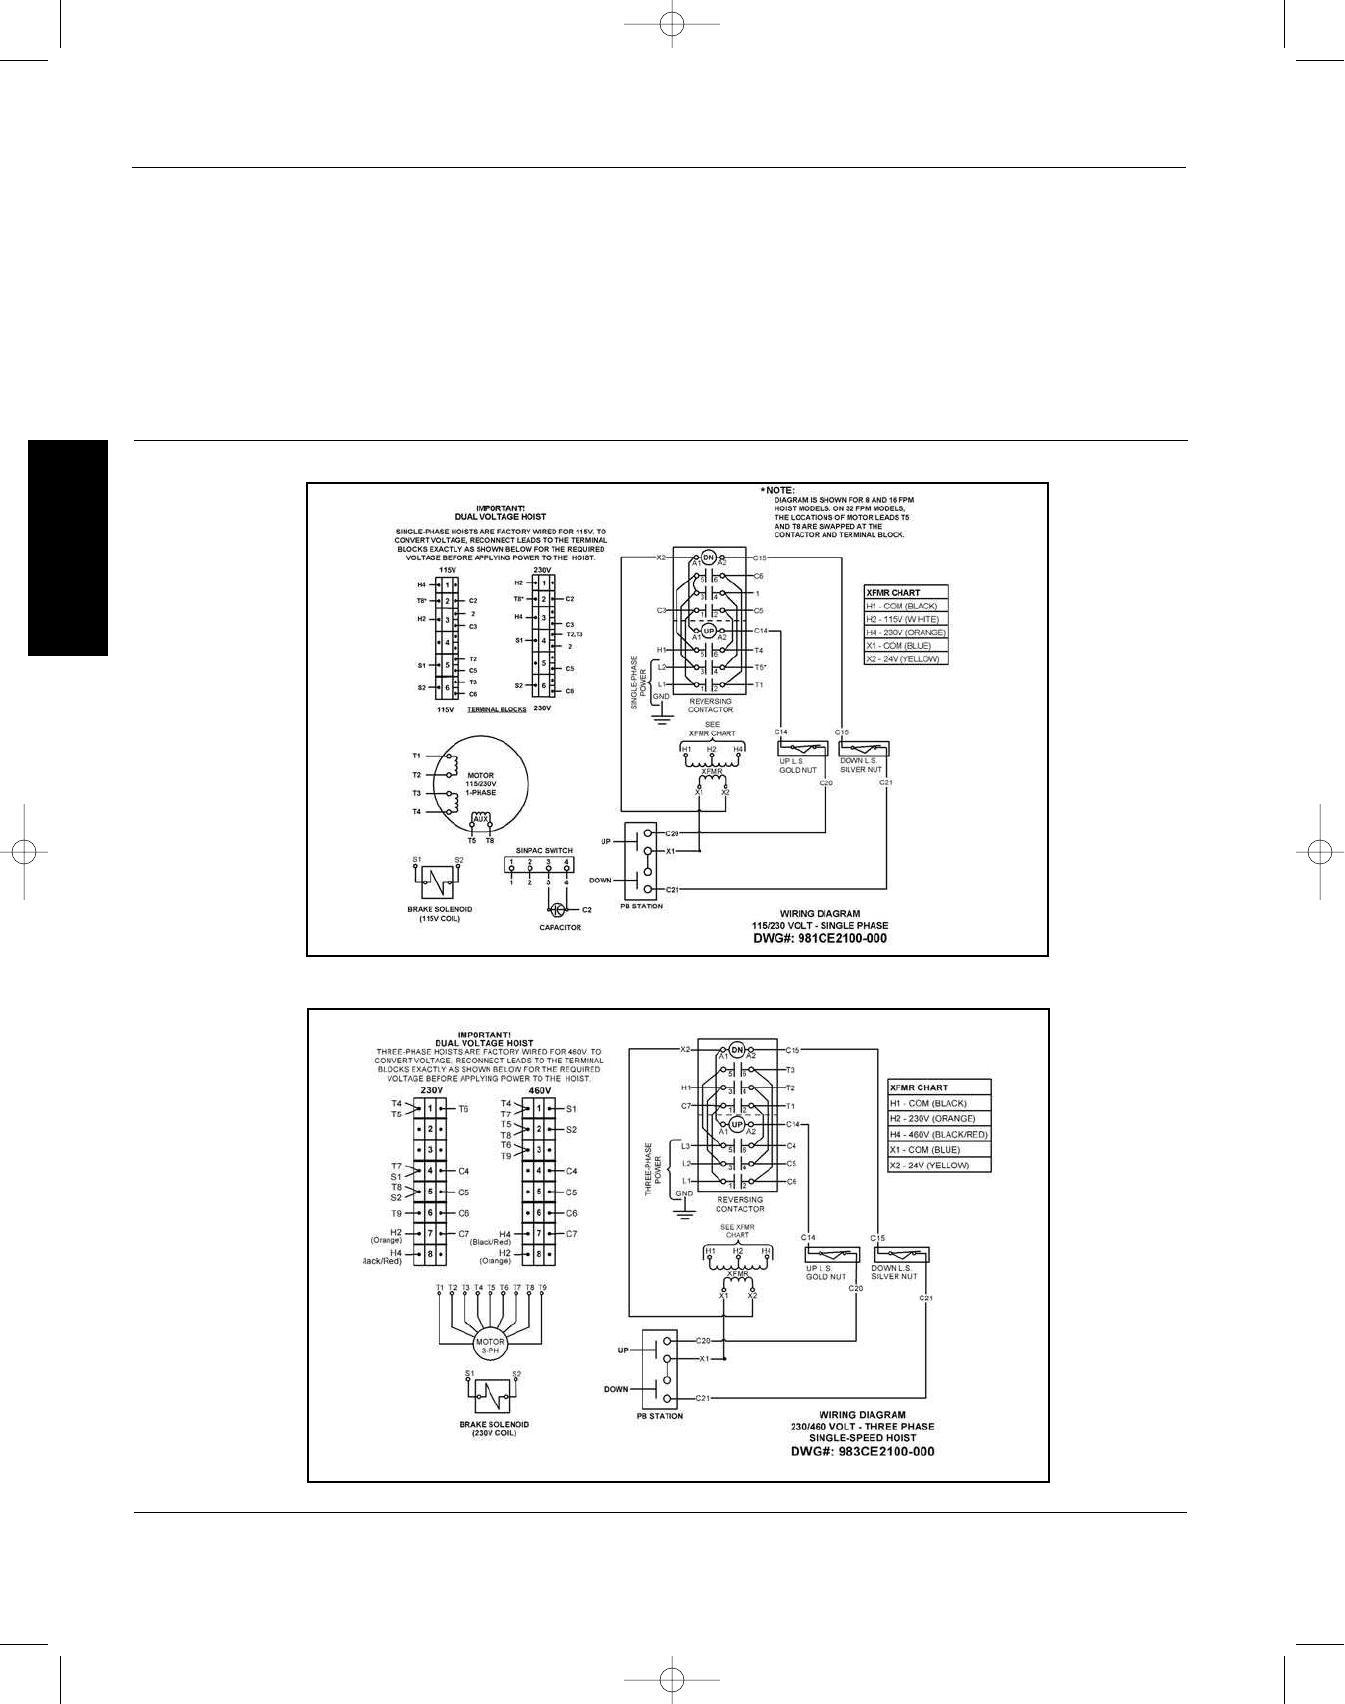 dayton electric hoist wiring diagram - wiring diagram budgit hoist wiring schematic